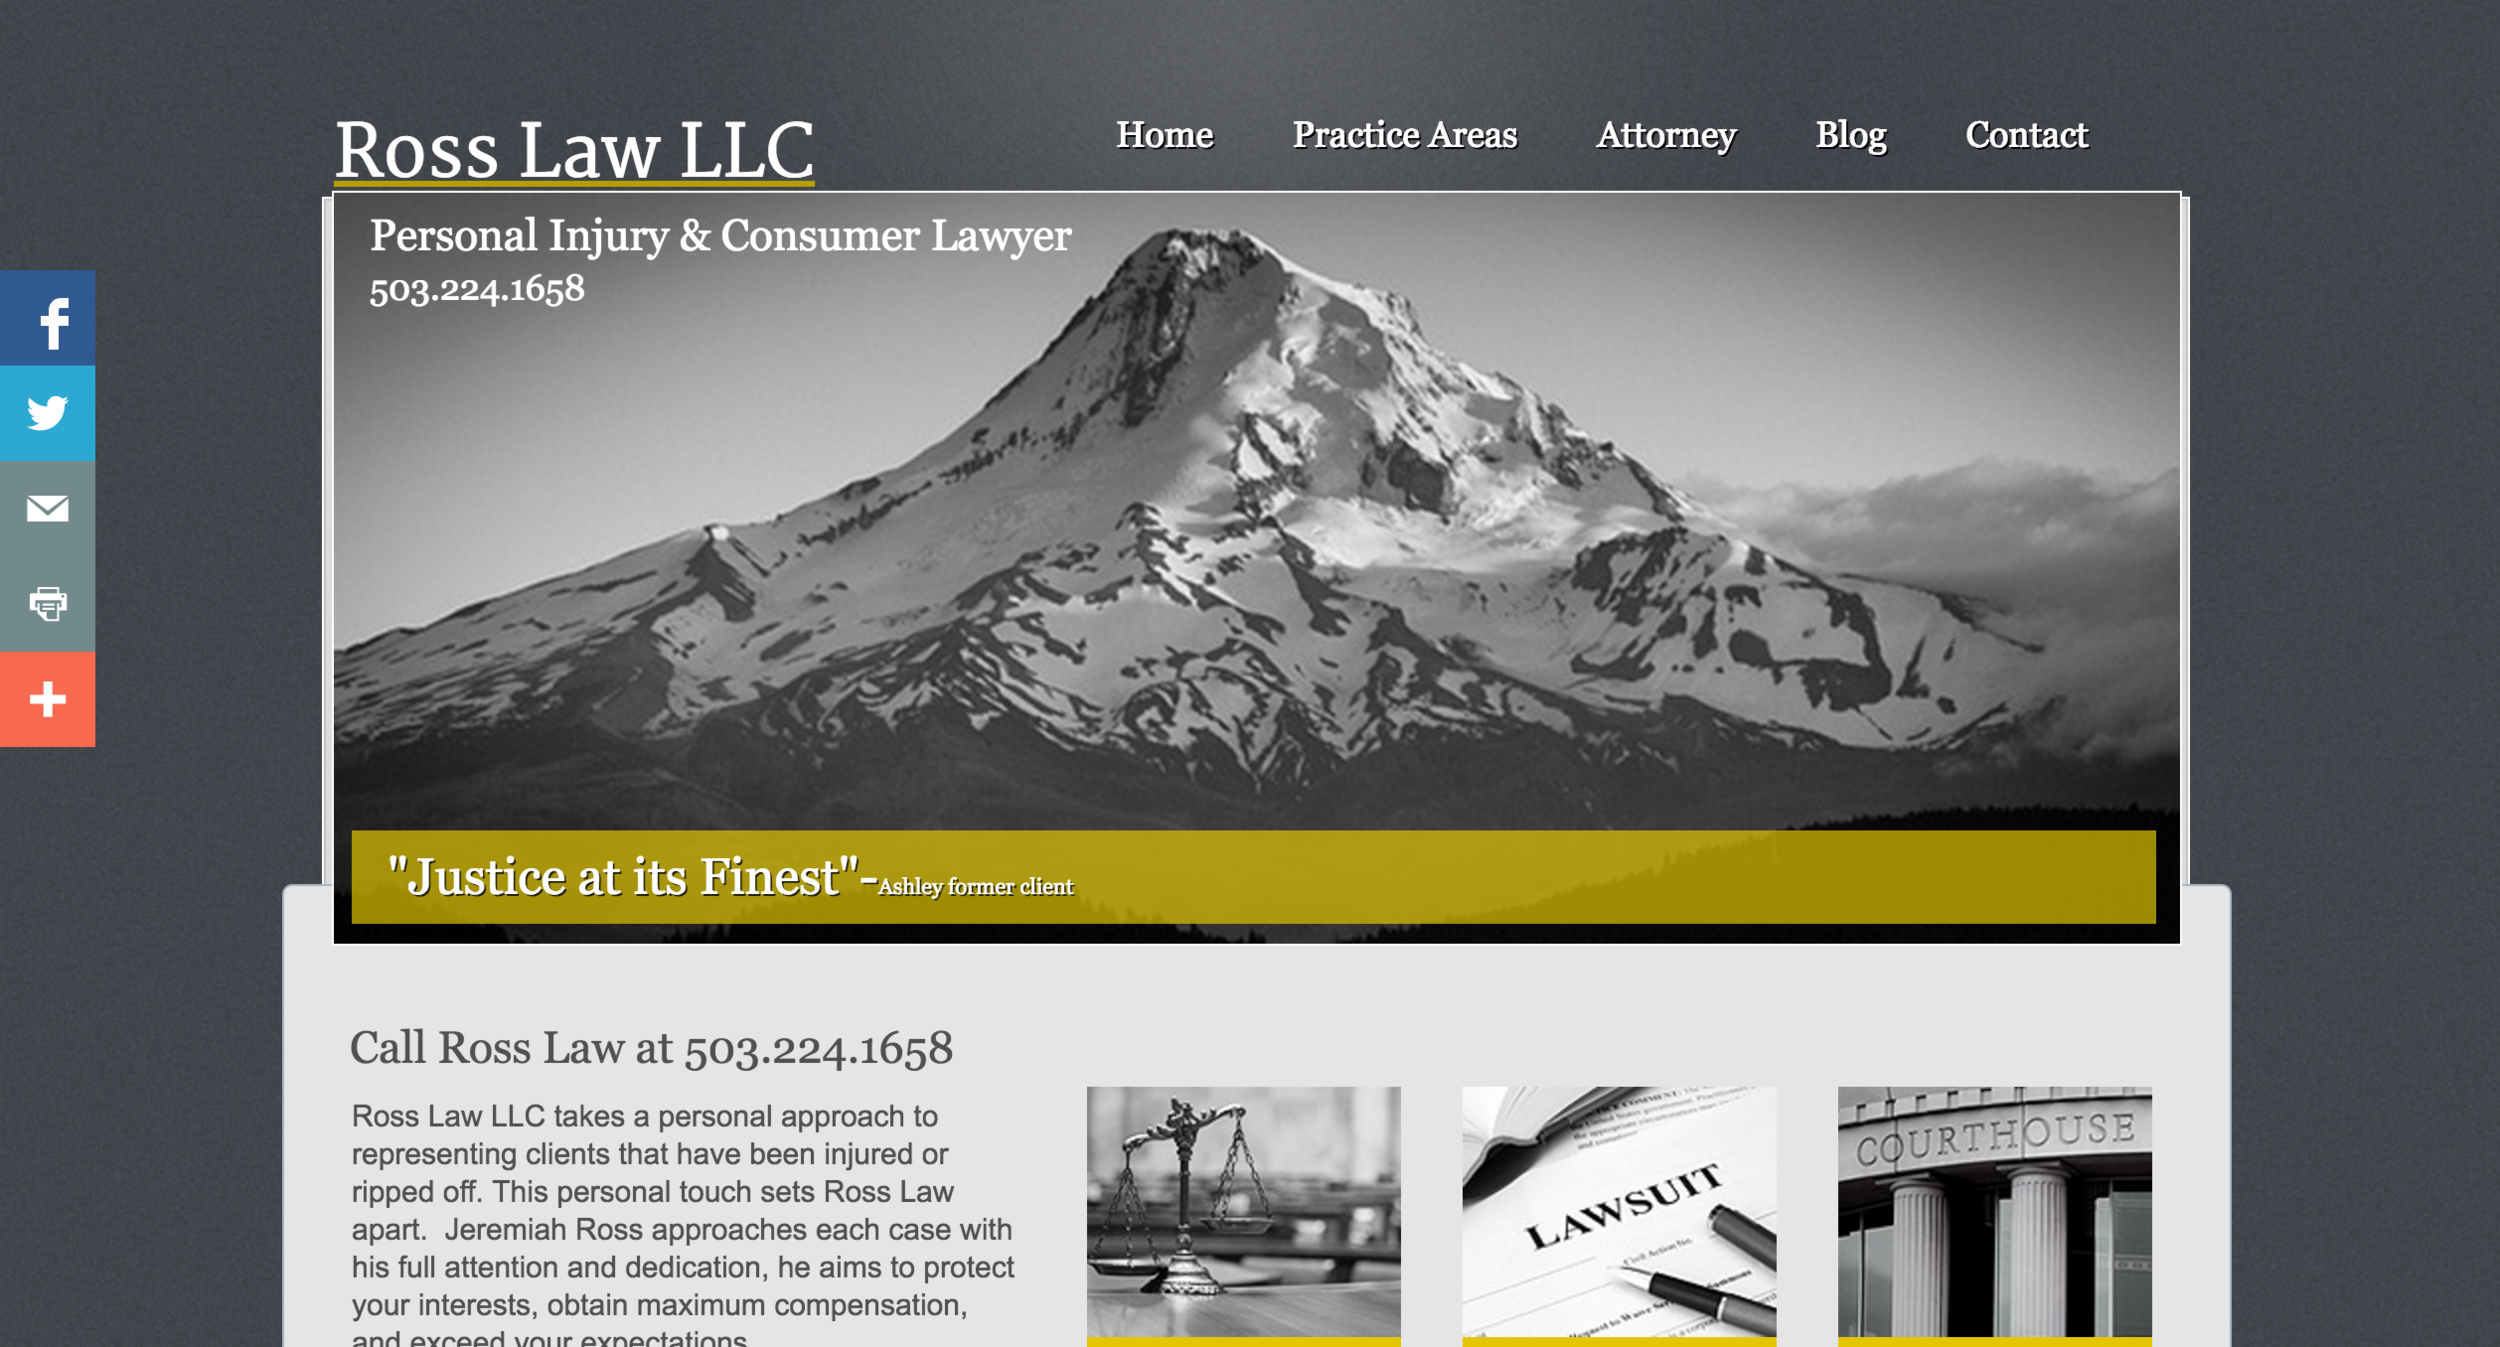 Before: RossLawLLC.com (Yes, we have a new domain name for this one as well!)